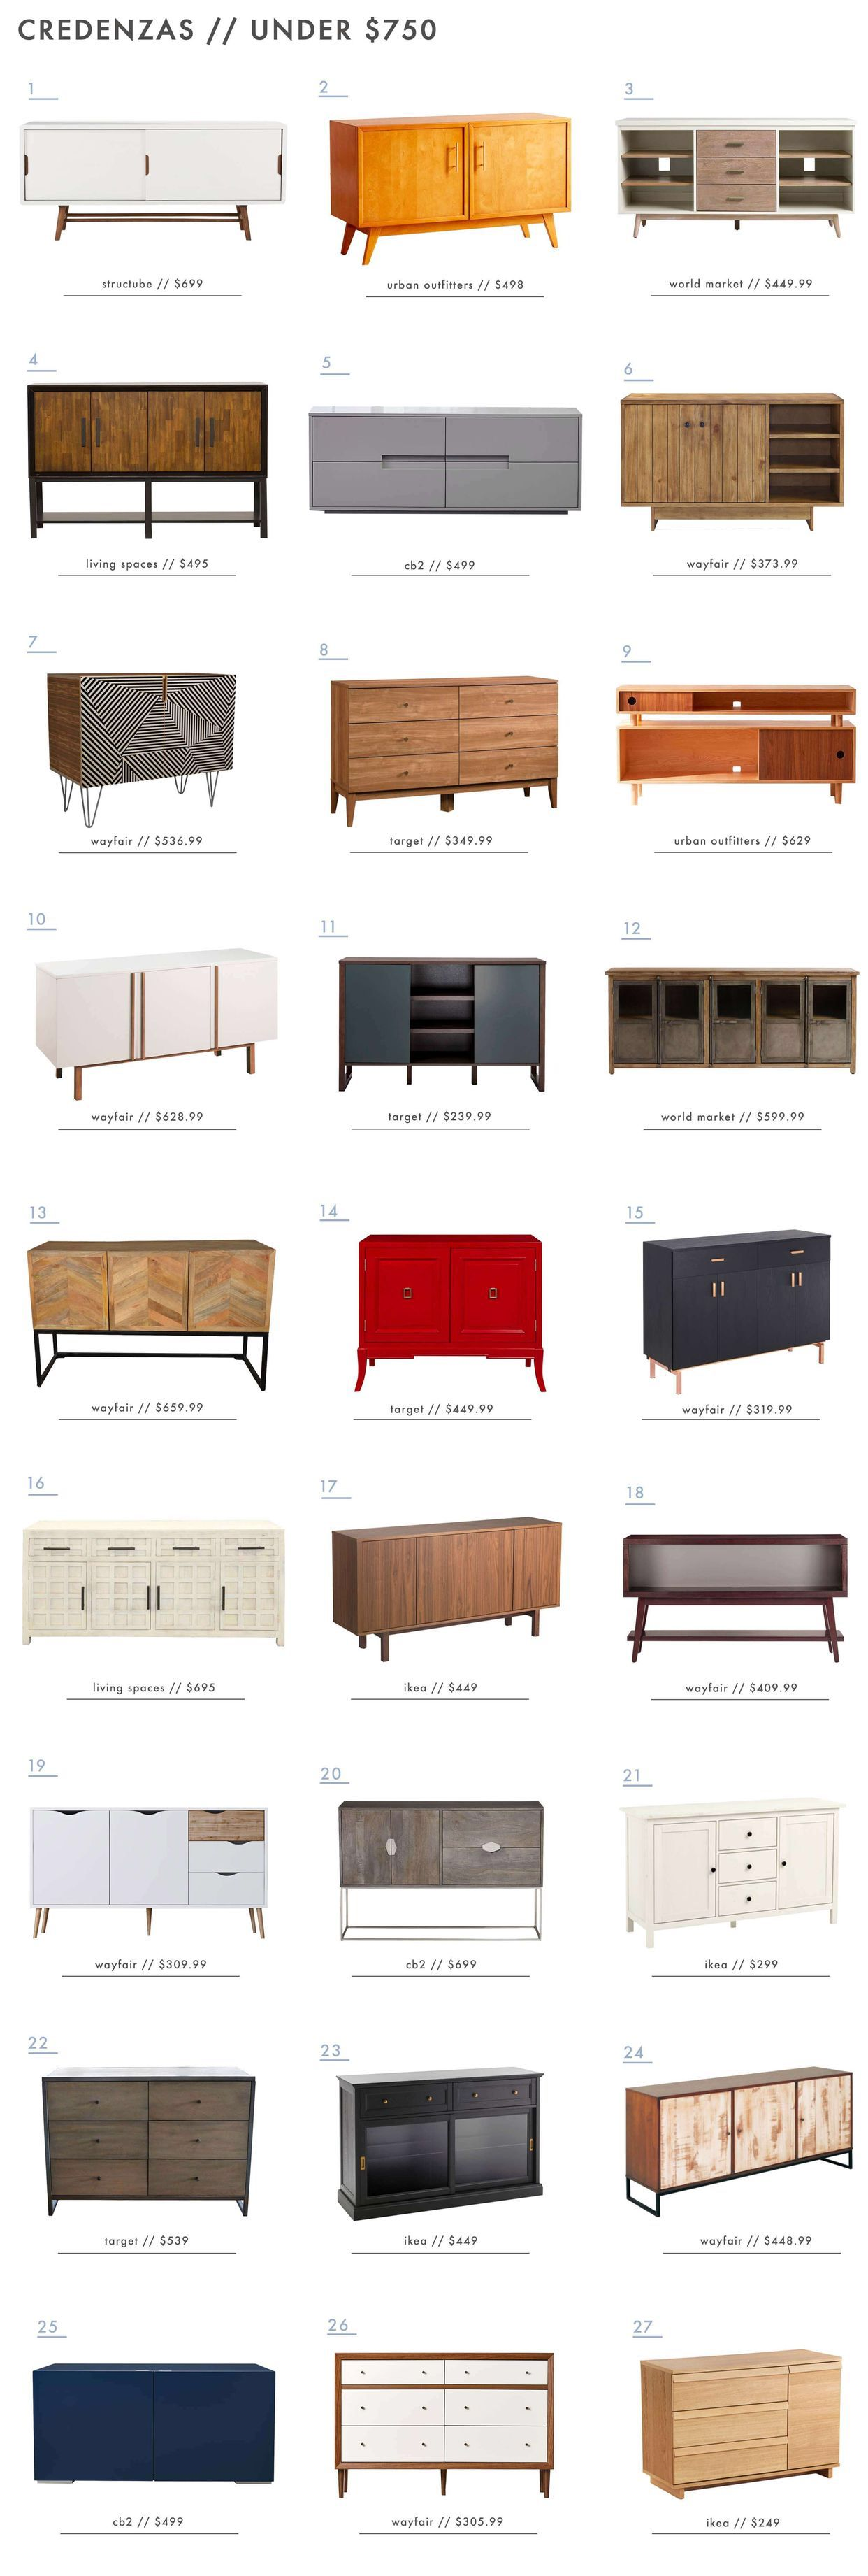 Pin by anne tan on tables in pinterest furniture credenza